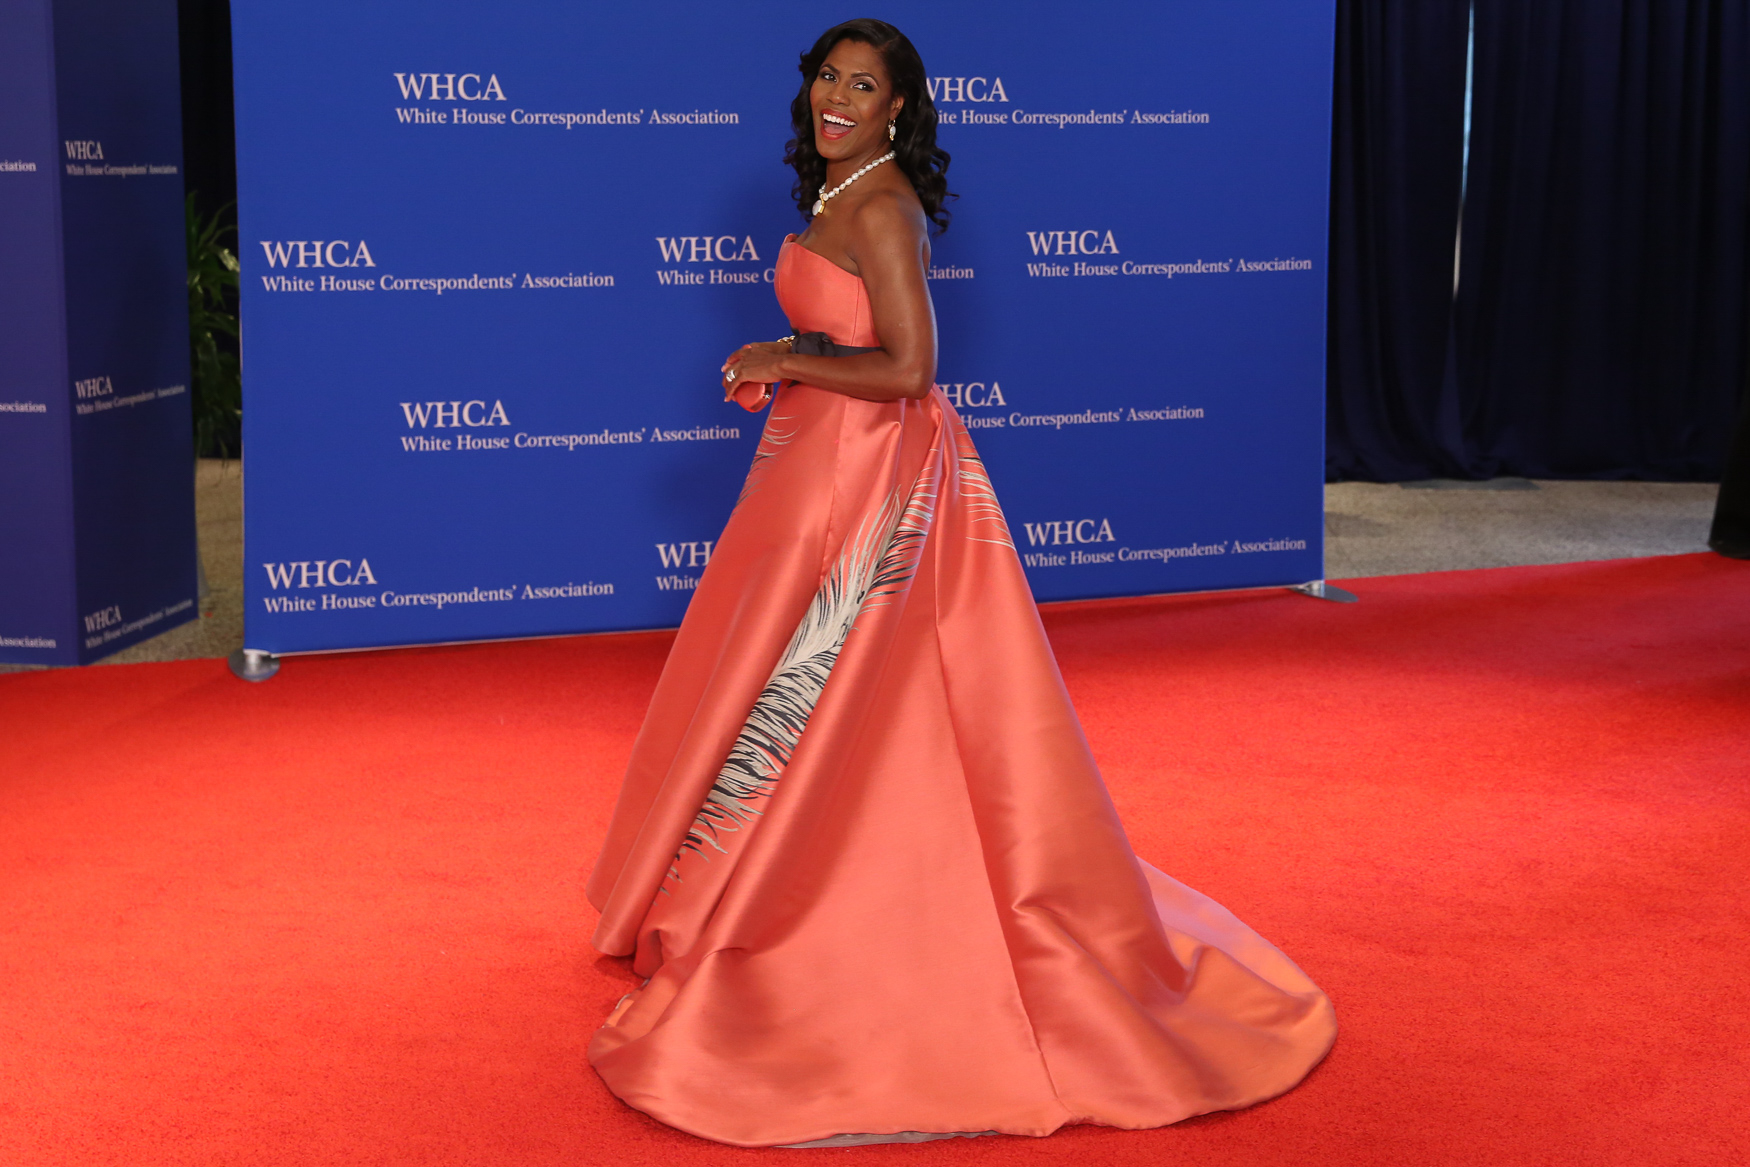 Omarosa may be out of the White House, but she came to the White House Correspondents' Dinner dressed with a vengeance. That color is perfect on her skin and the silhouette is as dramatic as she was on The Apprentice (Amanda Andrade-Rhoades/DC Refined)